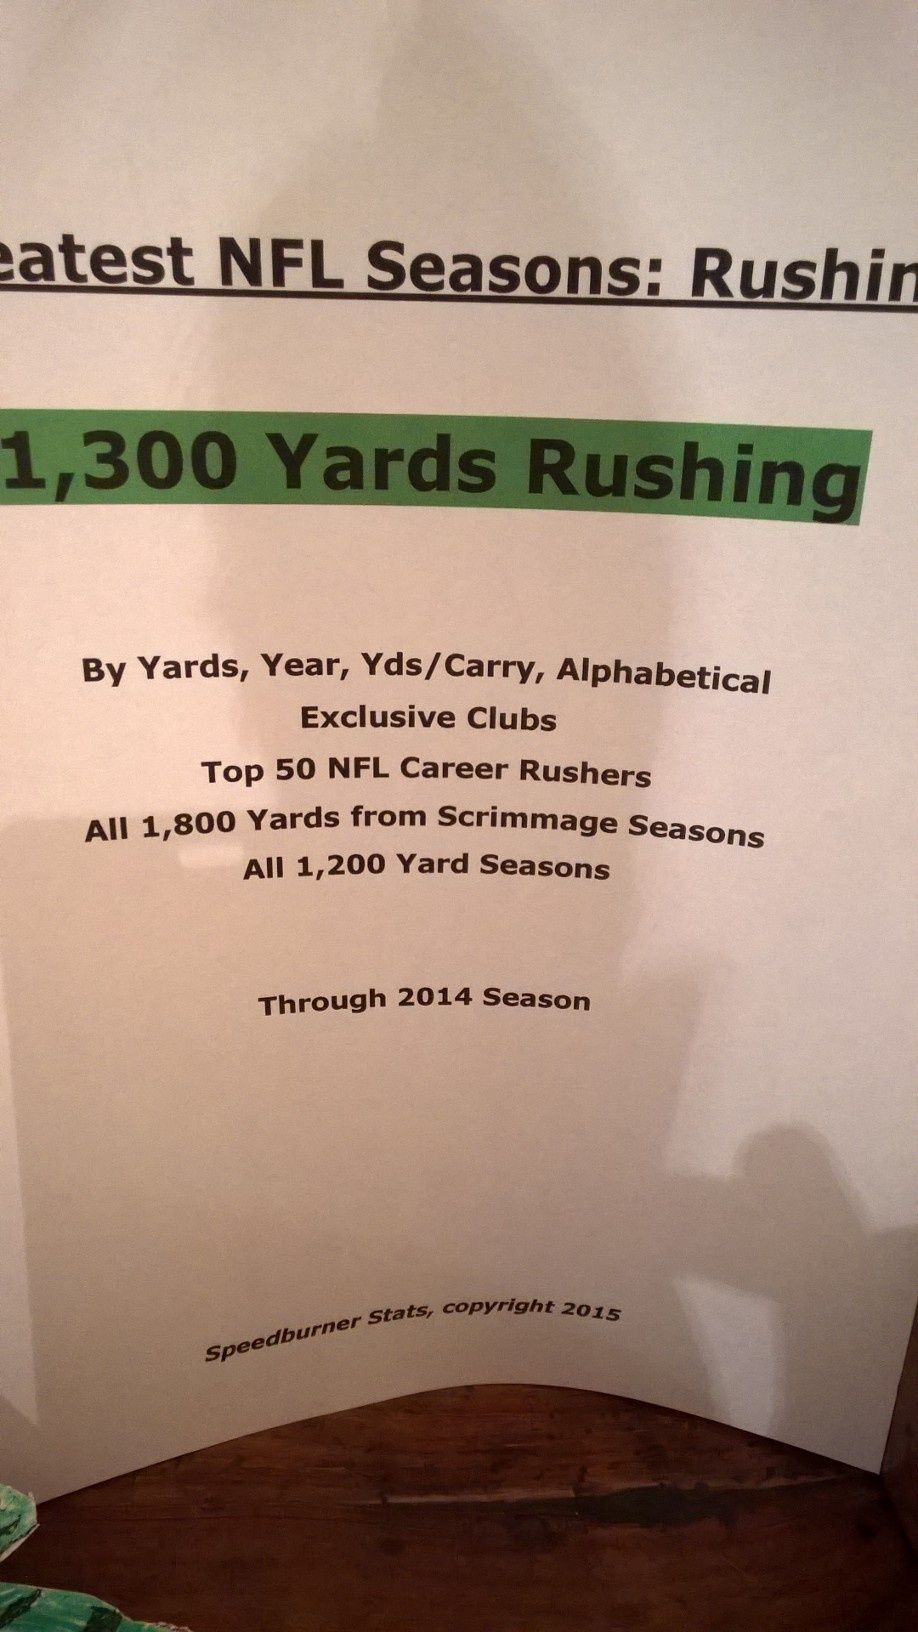 NFL All-Time Rushing Seasons